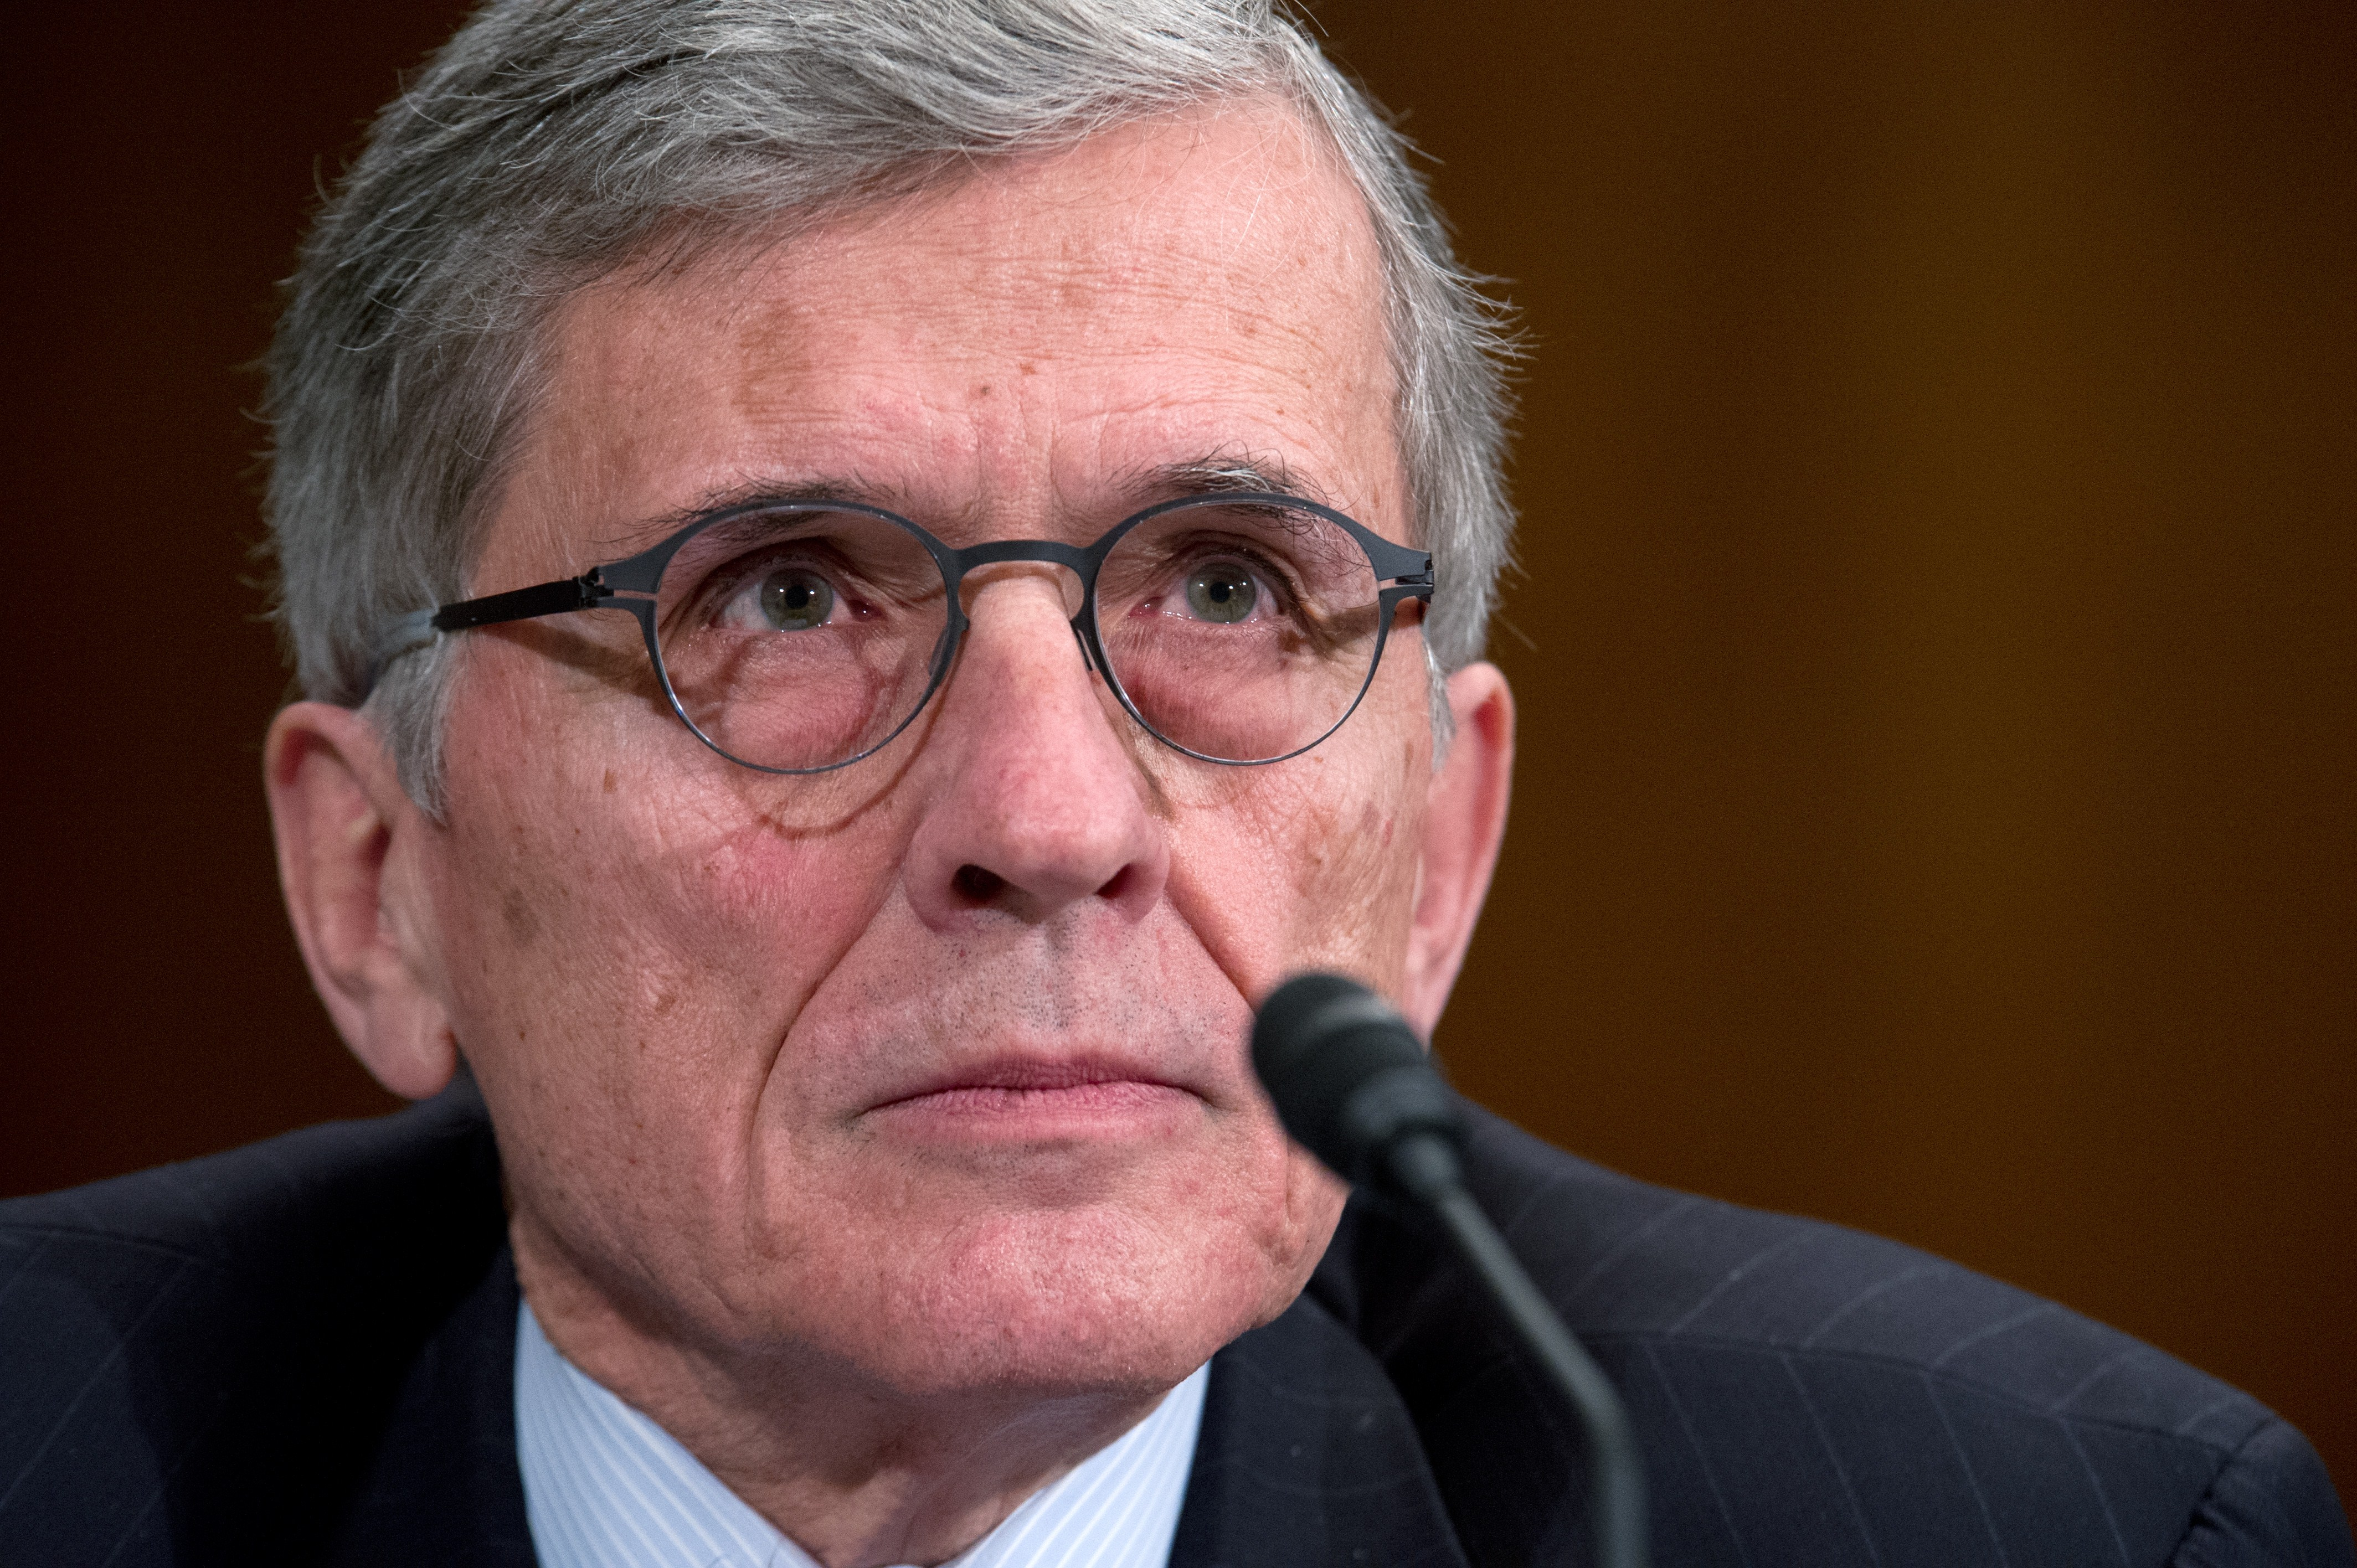 FCC Chairman Tom Wheeler gives testimony before the Financial Services and General Government Subcommittee hearing on  Review of the President's FY2015 funding request and budget justification for the Federal Communications Commission (FCC). on March 27, 2014 on Capitol Hill in Washington, D.C.